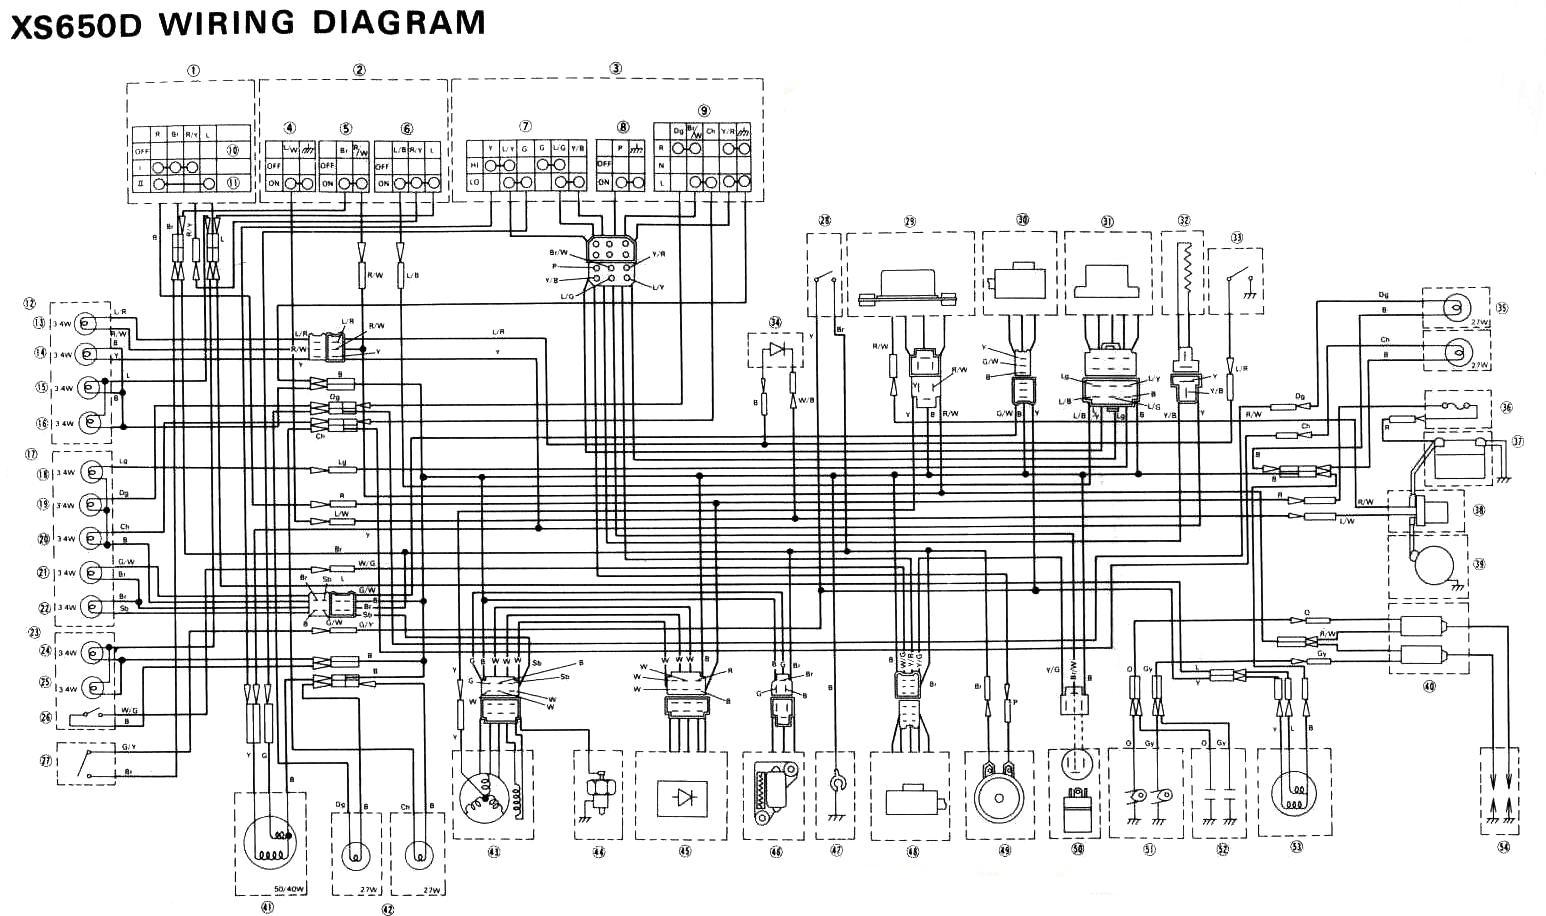 81 Xs 400 Wiring Diagram. . Wiring Diagram Xs Simplified Wiring Diagram on